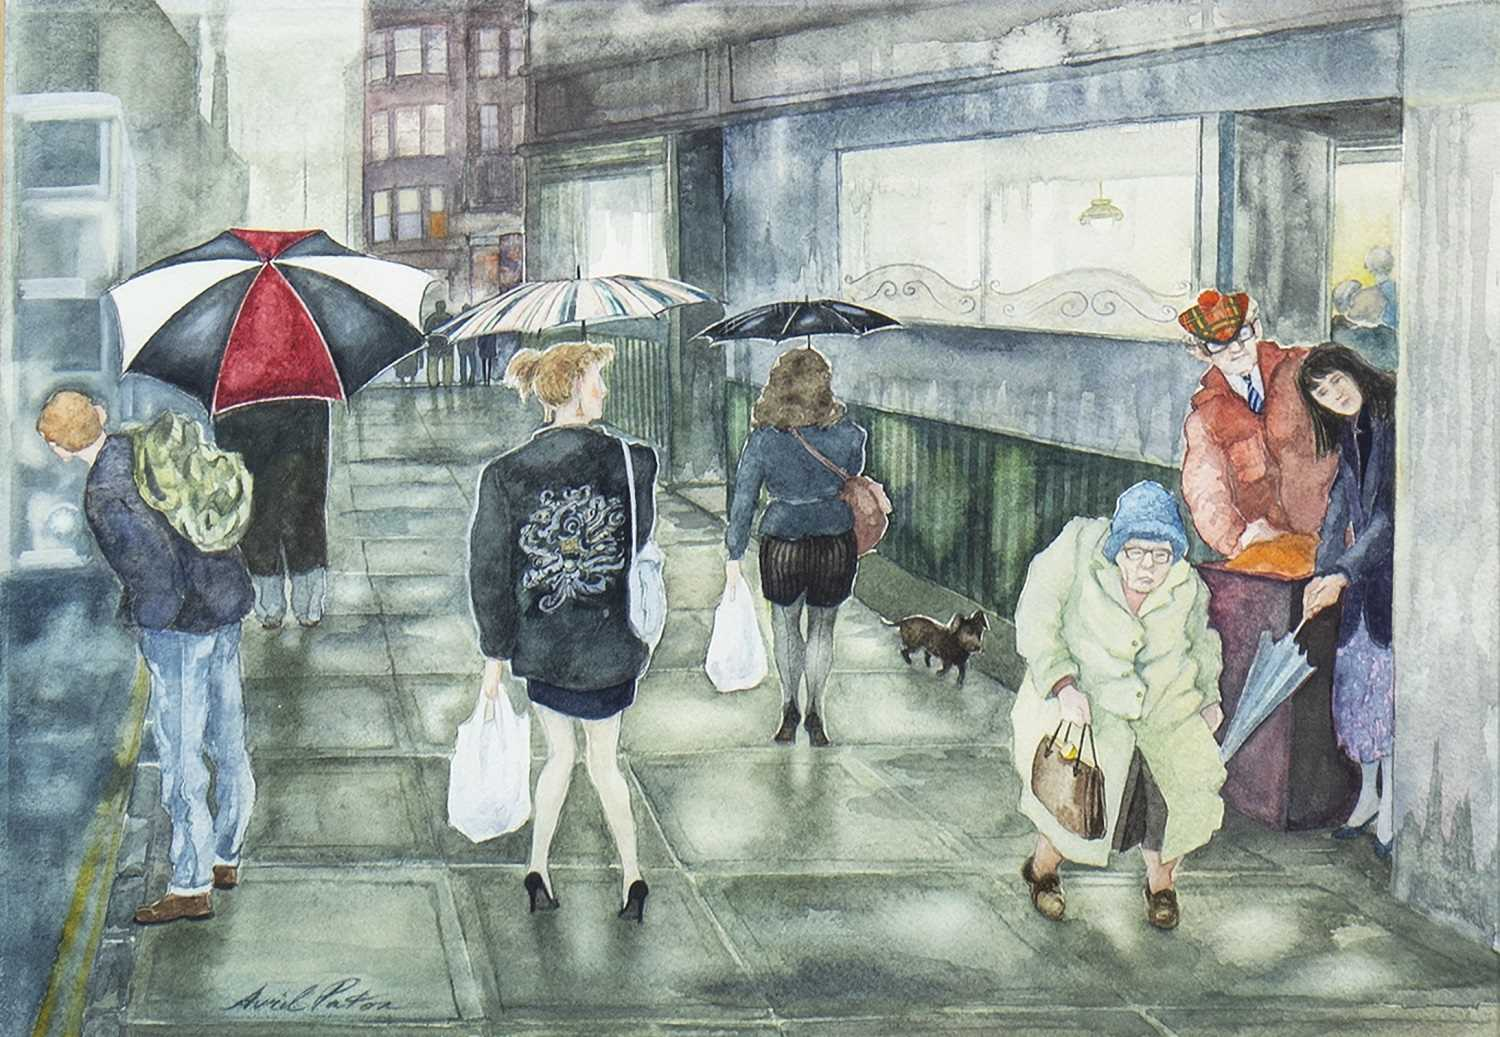 Lot 620 - BYRES ROAD BROLLIES, A WATERCOLOUR BY AVRIL PATON